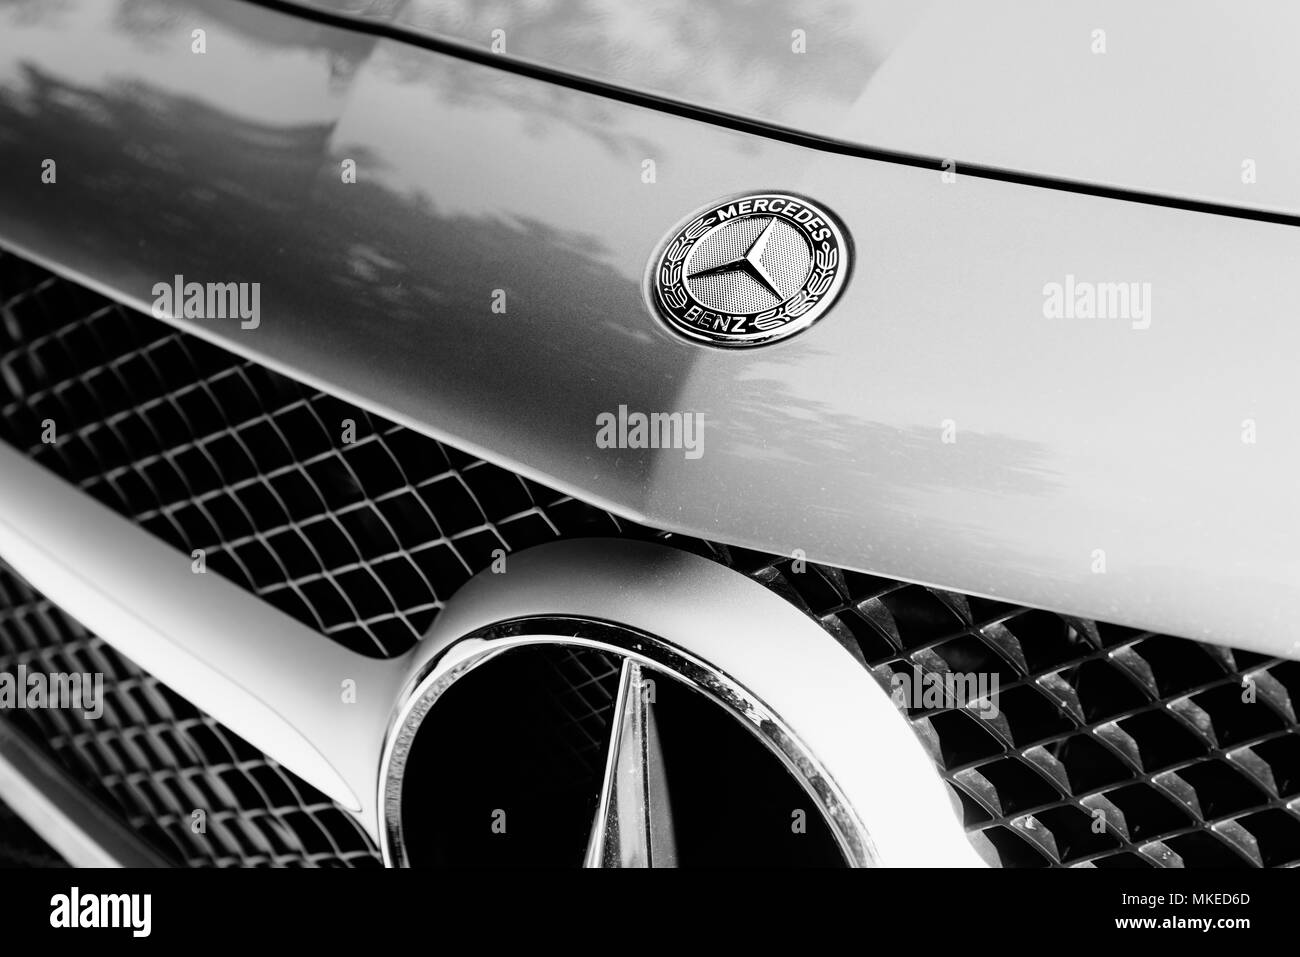 Front radiator of a Mercedes Benz - Stock Image